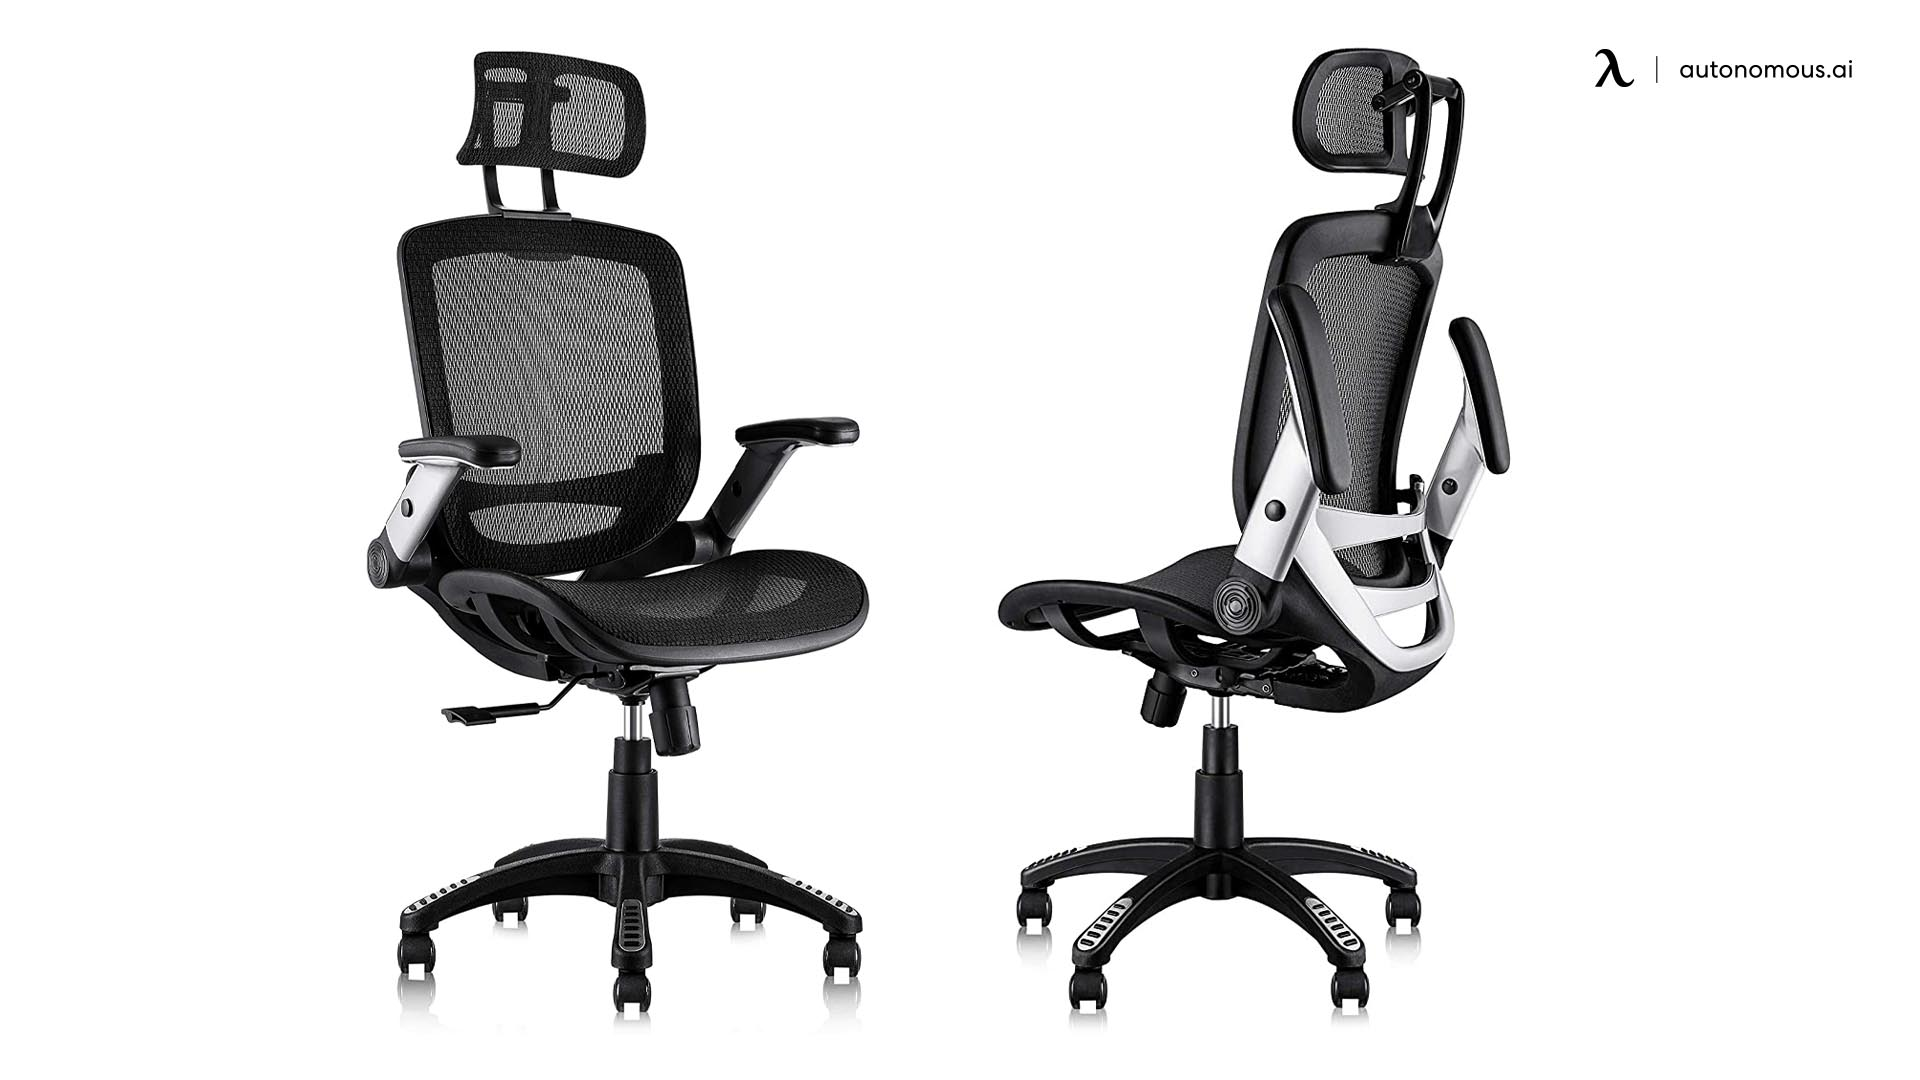 Gabrylly Mesh Chair with Lumbar Support